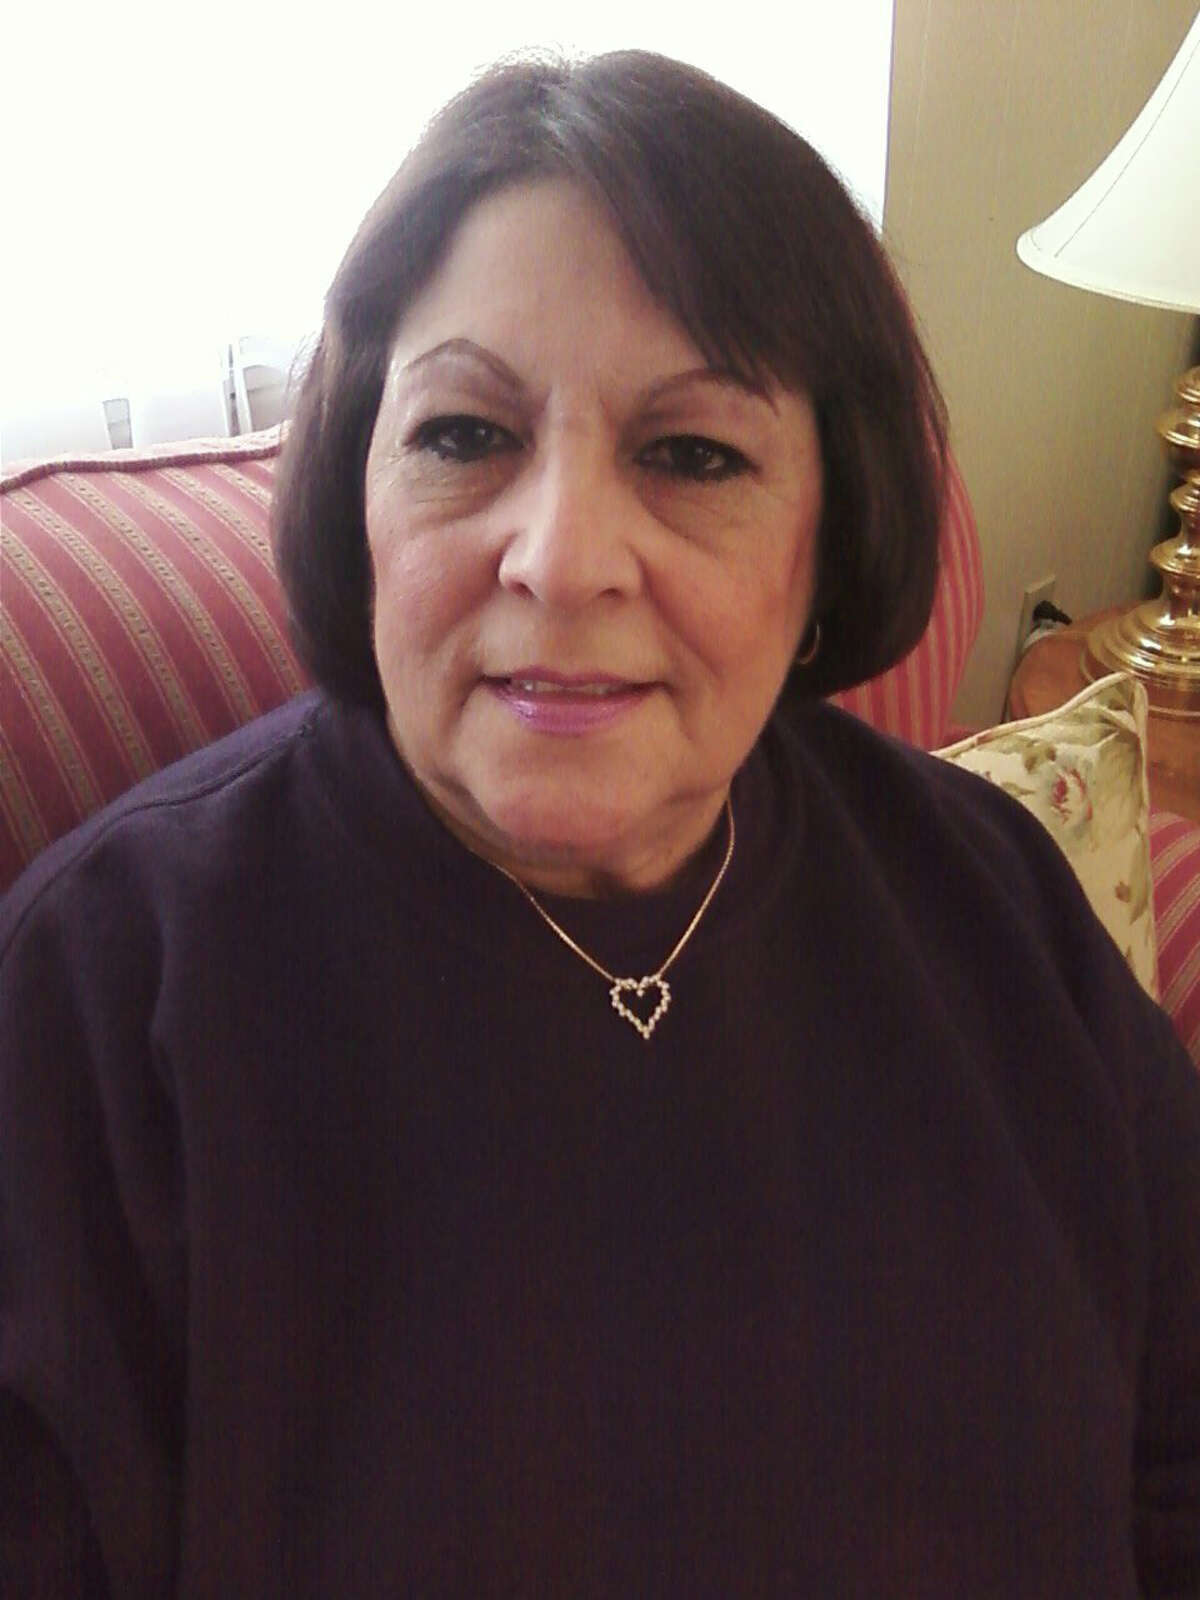 Maryann Anderson, 76, was allegedly beaten to death by her son, Timothy Anderson, 42, in their Stamford home. The assault happened on the afternoon of Monday, March 23, 2015. Maryann underwent surgery that night, but succumbed to her injuries Thursday, March 26, 2014, at Stamford Hospital. Her death is the second murder in the city in 2015. The first was the stabbing death of a middle-aged man in downtown Stamford earlier this month.